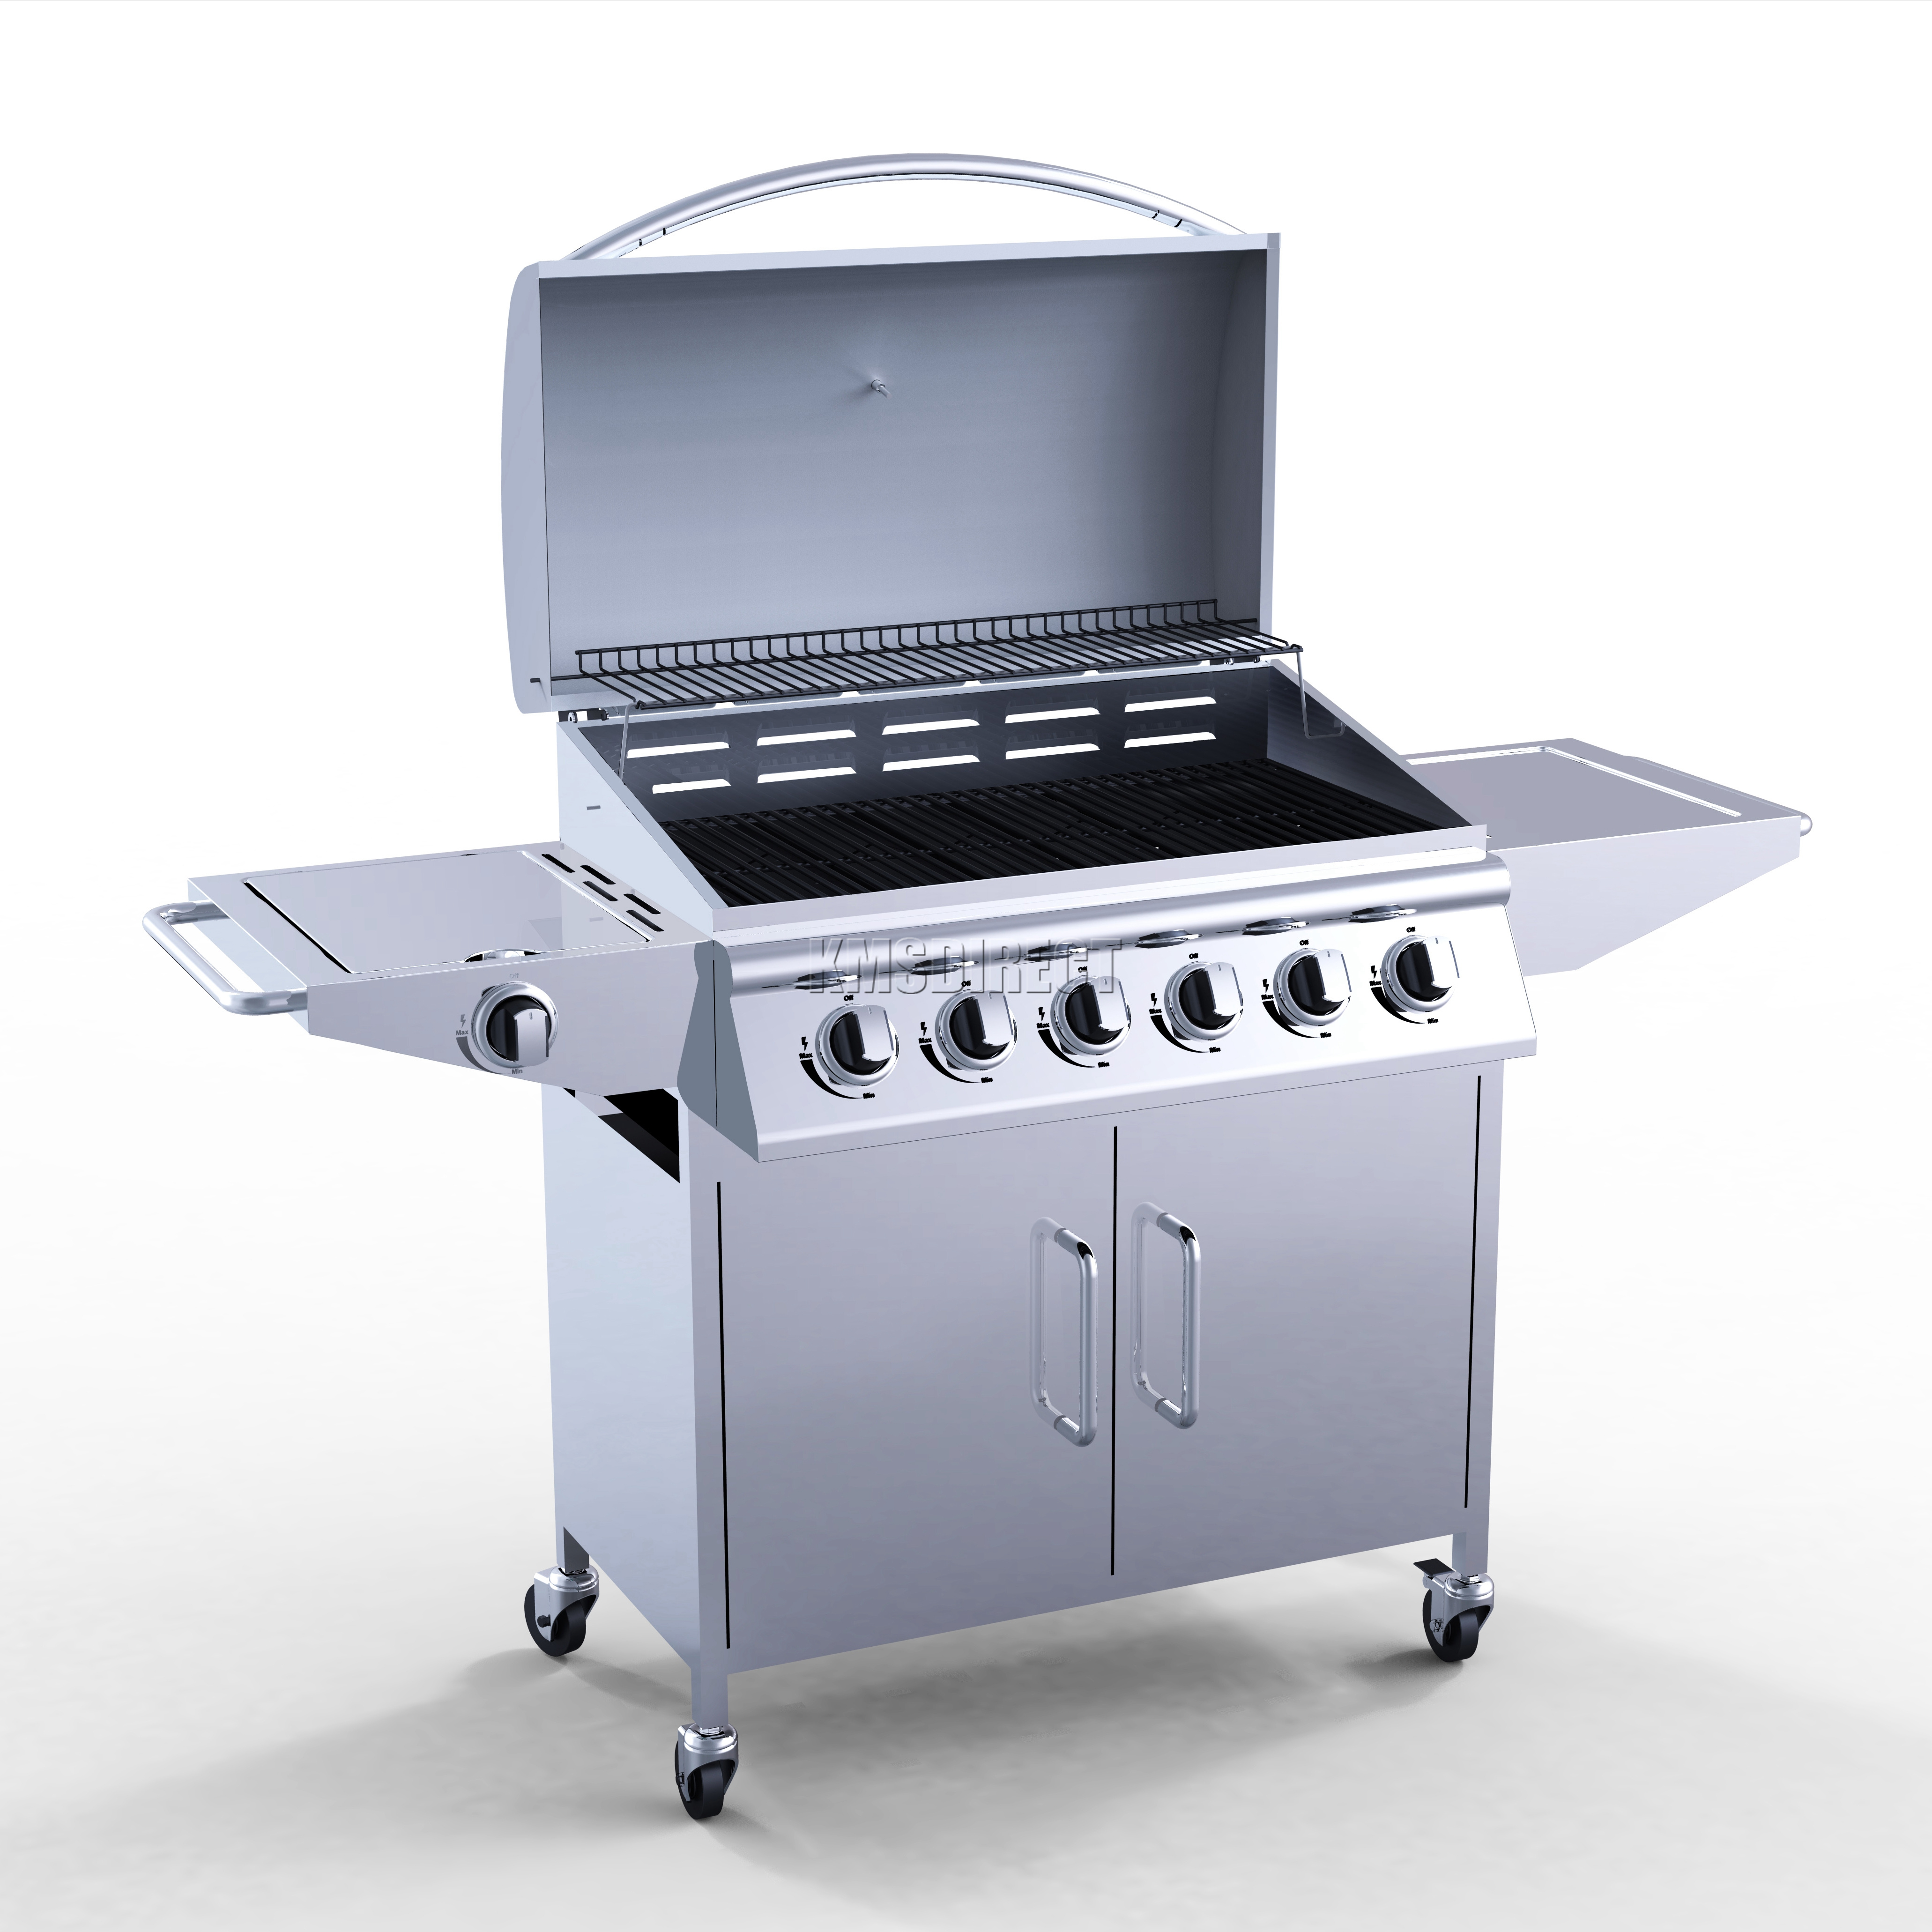 6 burner bbq gas grill stainless steel barbecue 1 side silver outdoor portable - Grill for bbq stainless steel ...